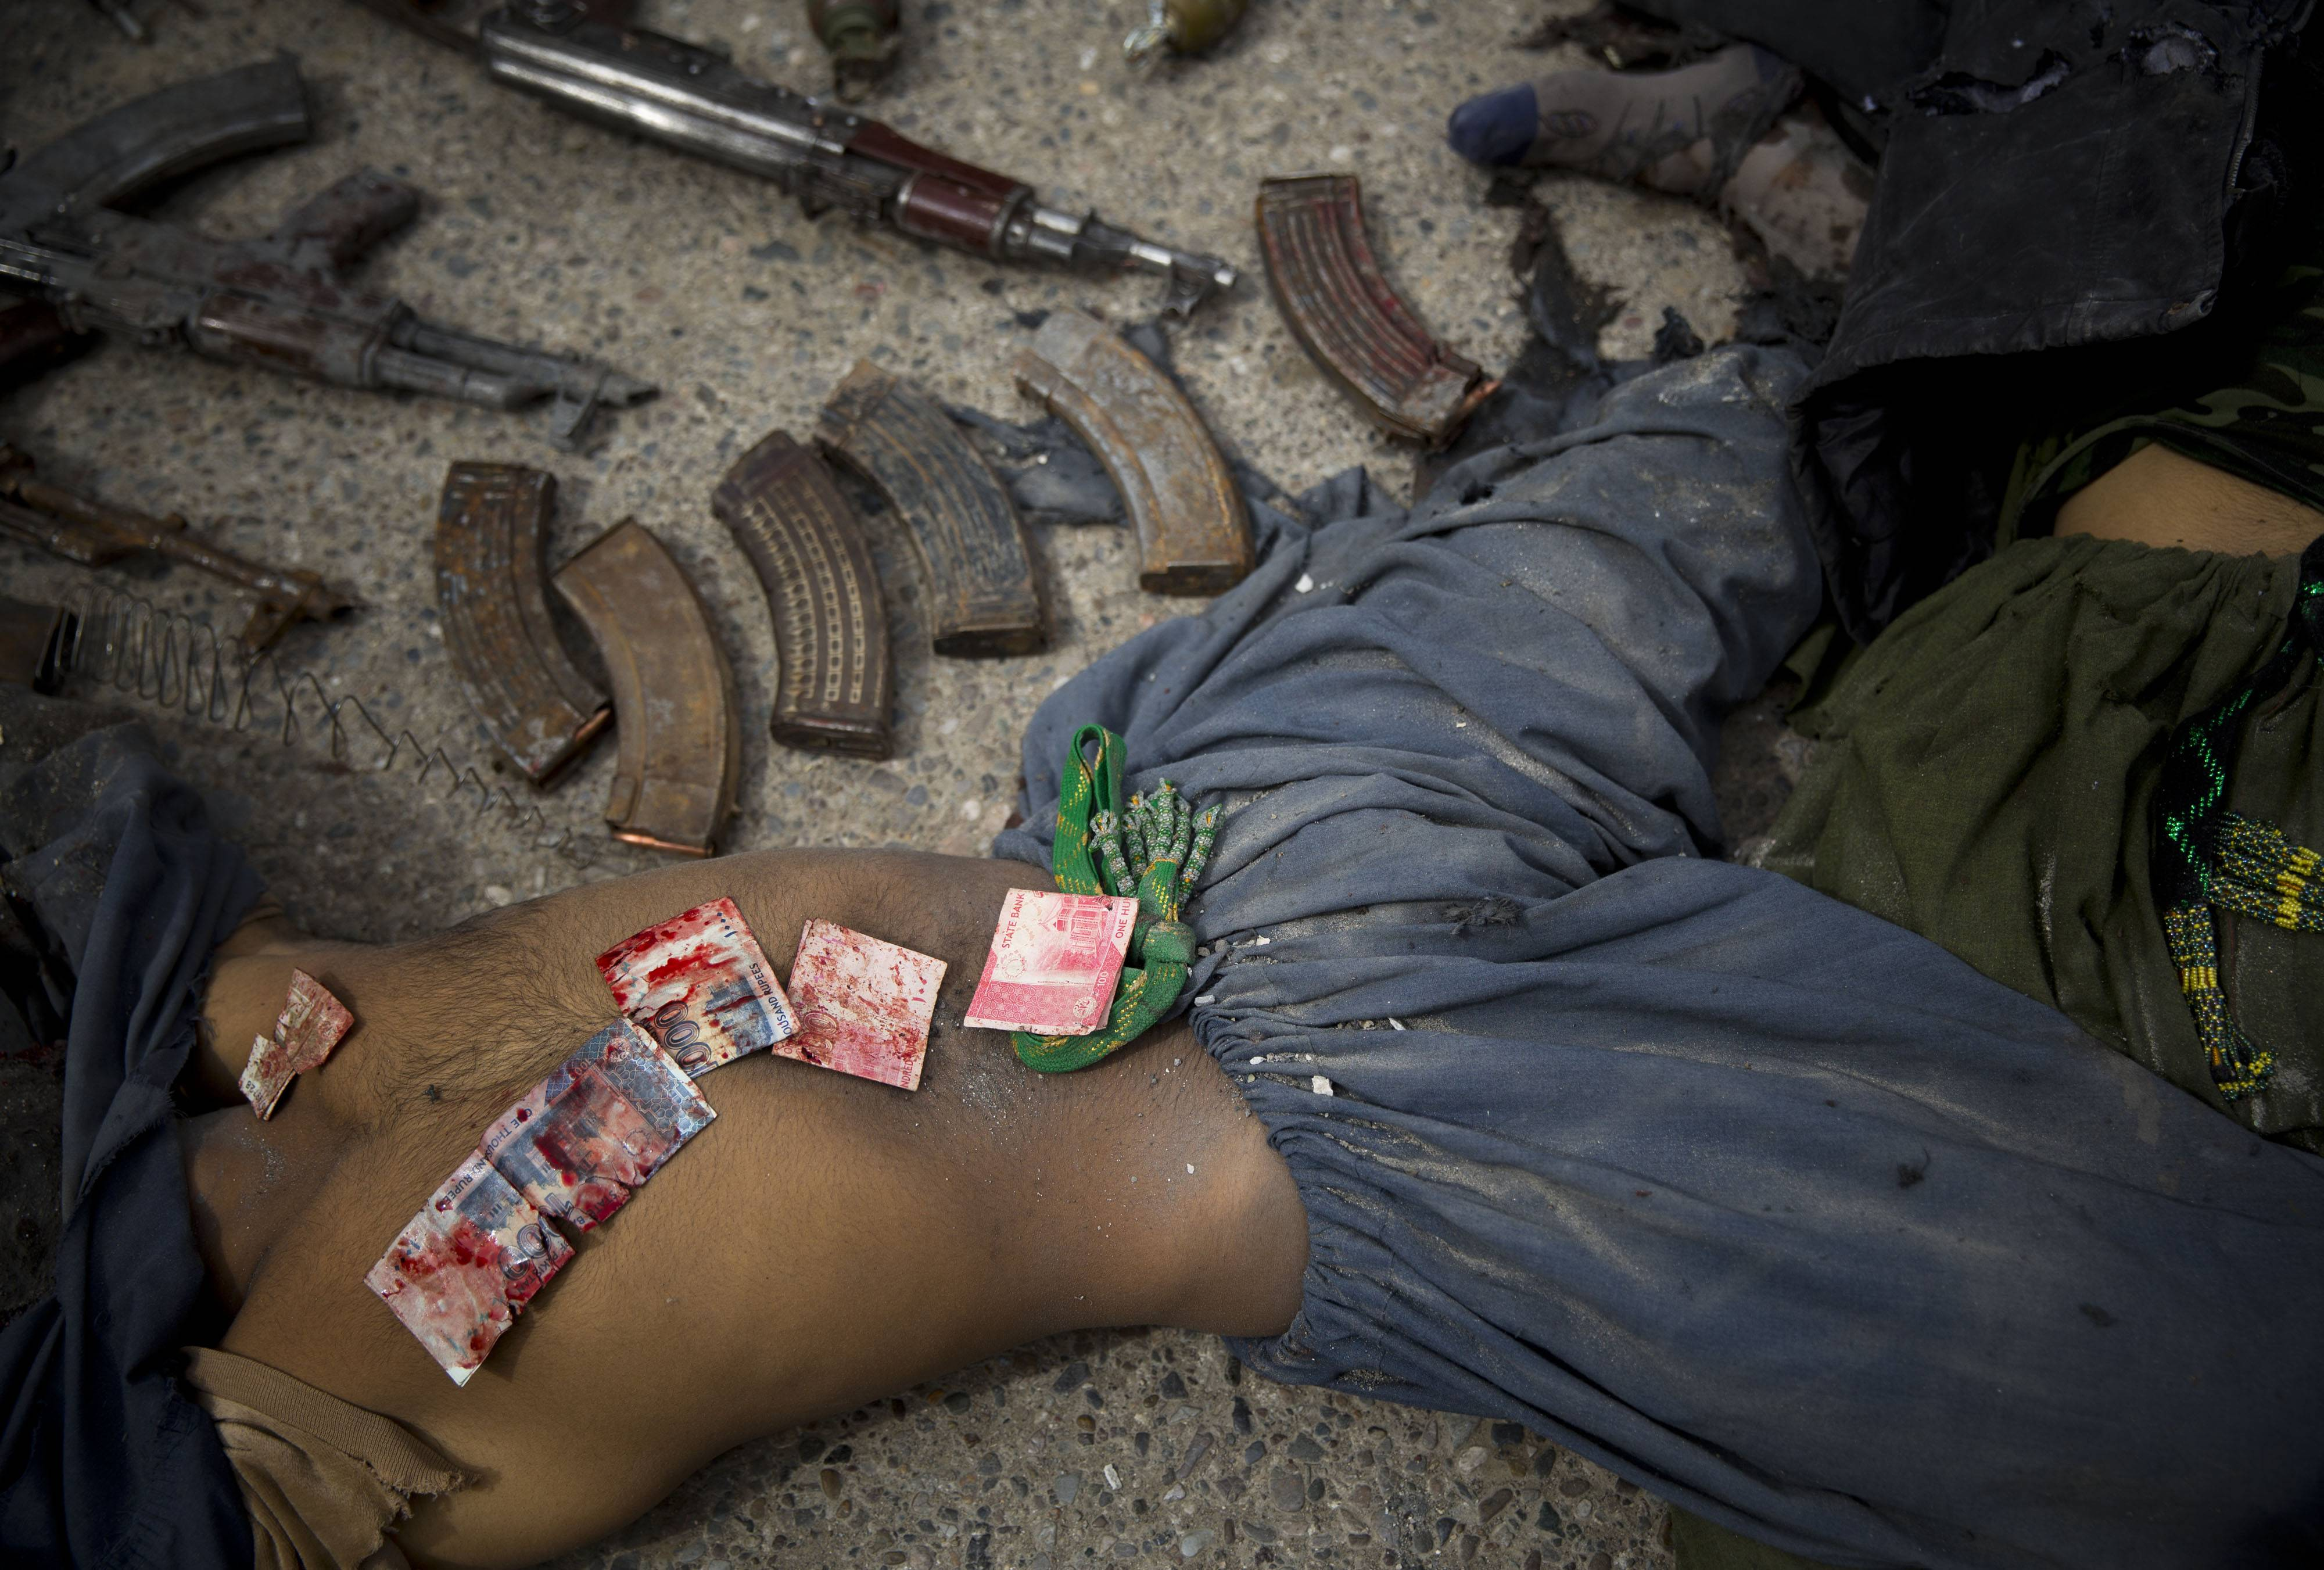 In this Wednesday, March 12, 2014 file photo made by Associated Press photographer Anja Niedringhaus, Pakistani bank notes covered in blood are displayed on the body of a dead suicide bomber after police found them in his pocket after an attack on the former Afghan intelligence headquarters, in the center of Kandahar, Afghanistan.